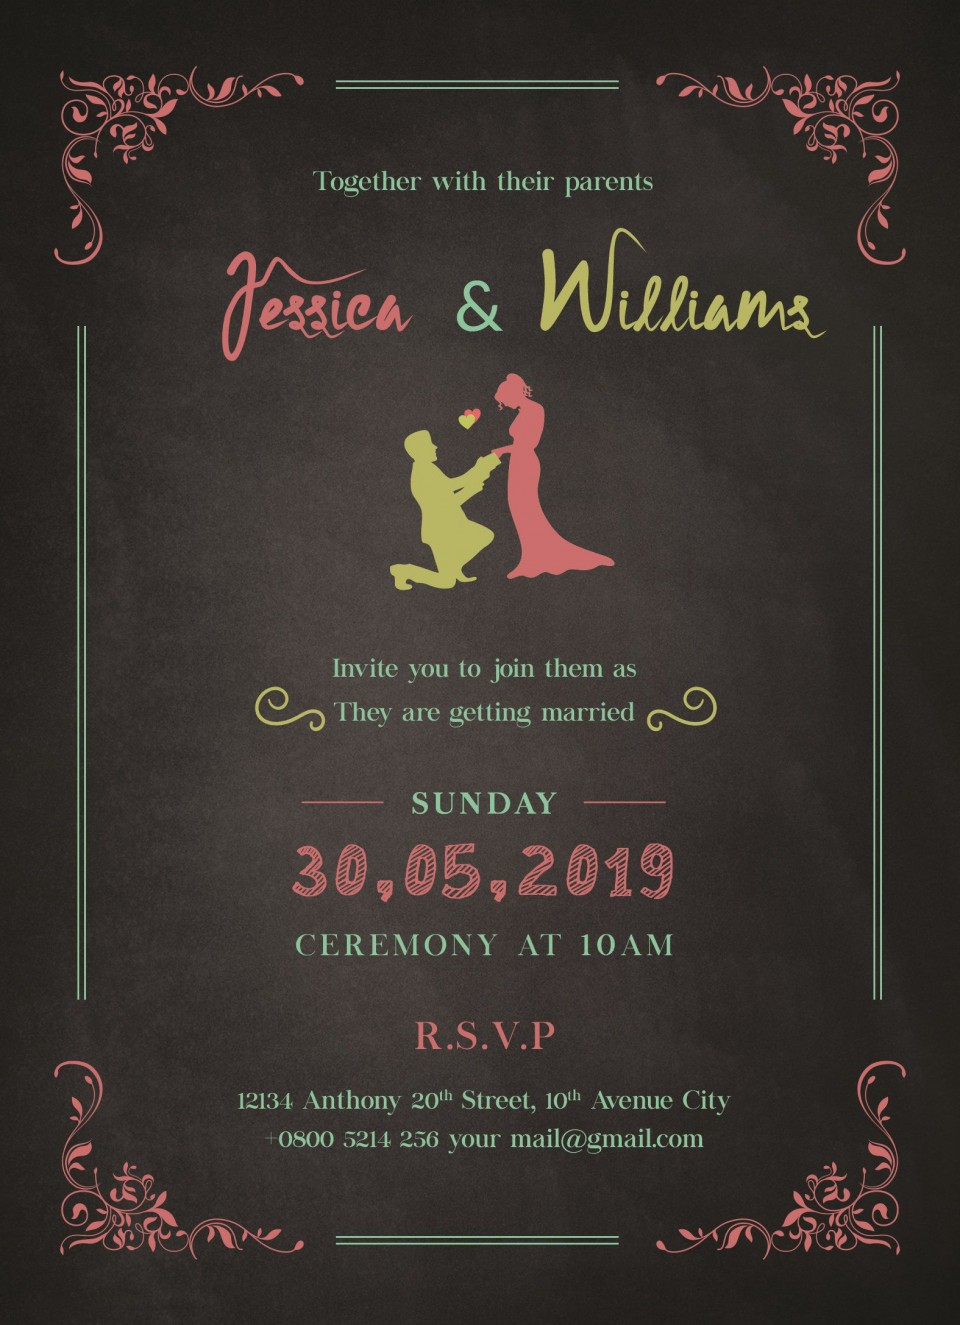 009 Imposing Free Download Invitation Card Design Software Sample  Wedding For Pc Indian960